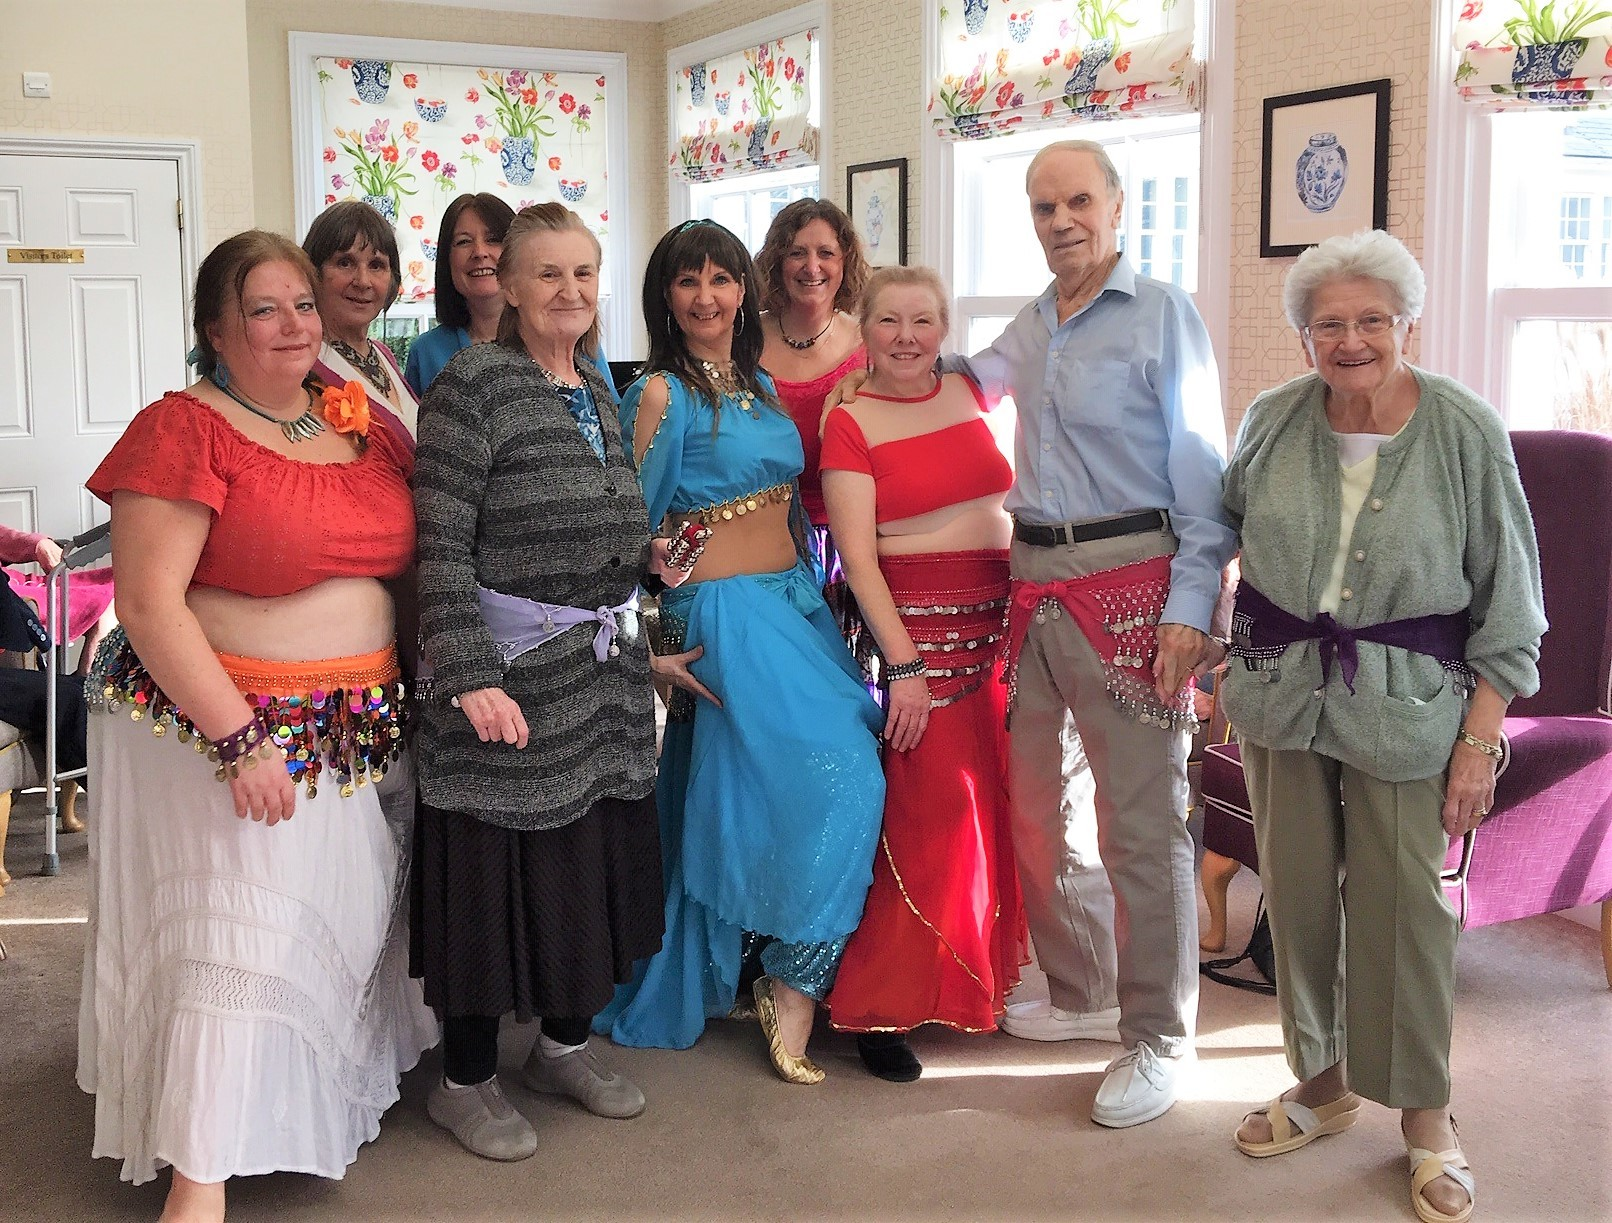 Dancers Alanya, Liz, Jane, Sarah and Trish were joined by receptionist Jill Walsh and residents Brenda Thompson, Peter Stock and Pam Parry